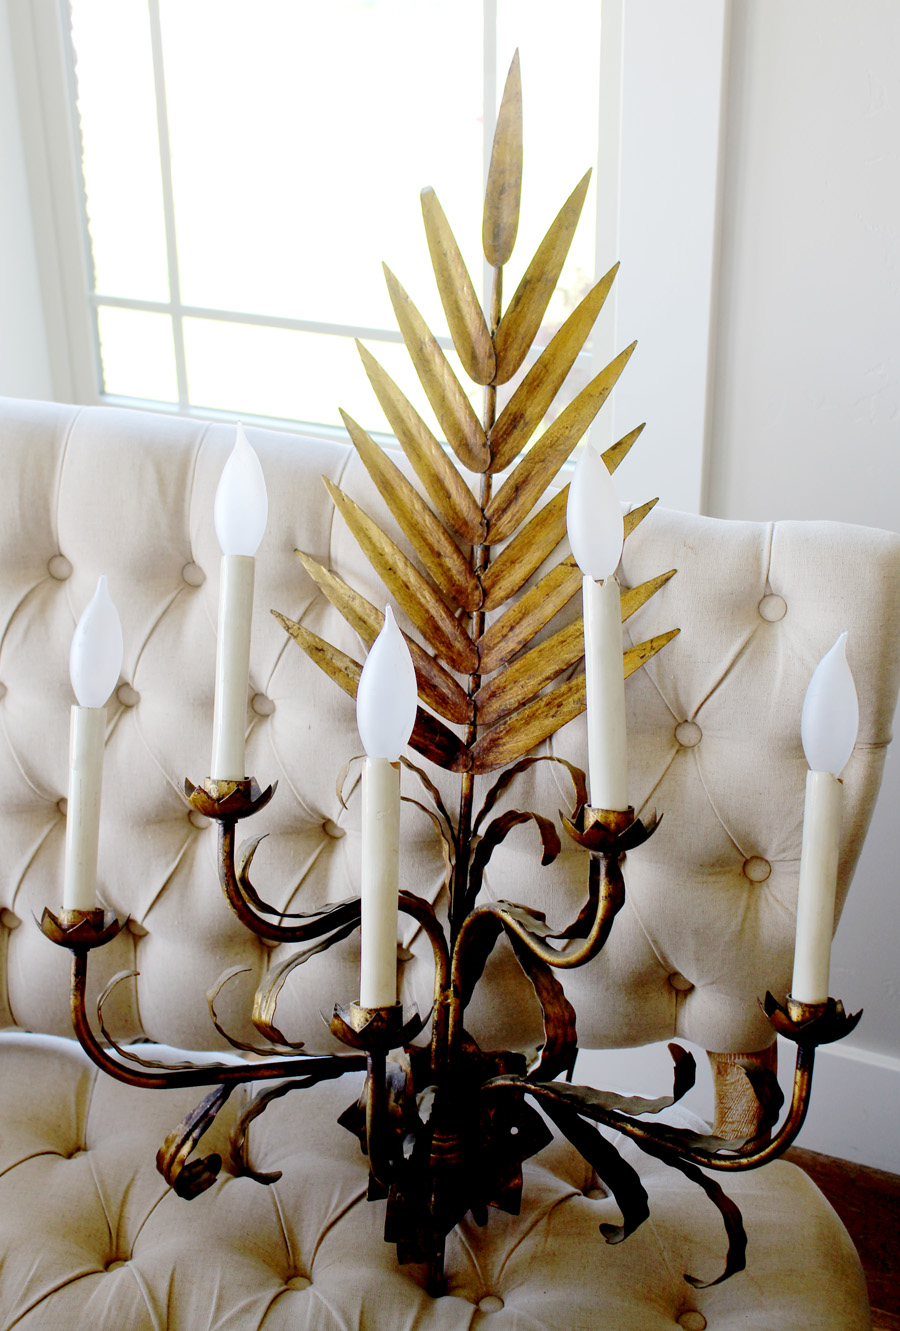 Antique Xlrg Italian Tole Gilt Palm Frond Sconce-